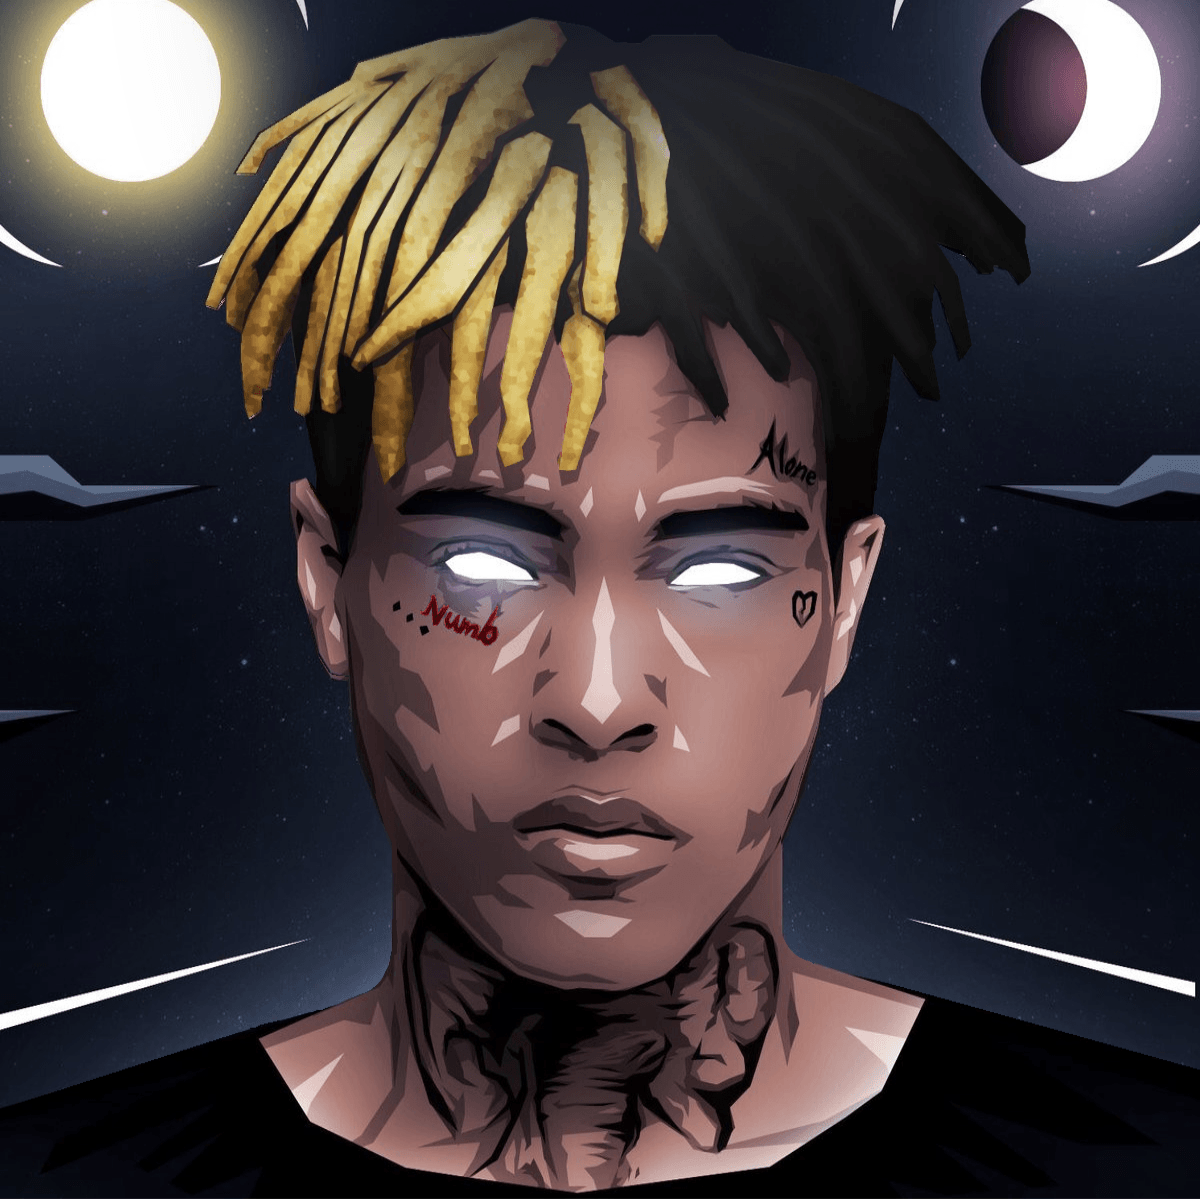 Coolest Iphone Backgrounds: XXXTentacion Dope Wallpapers